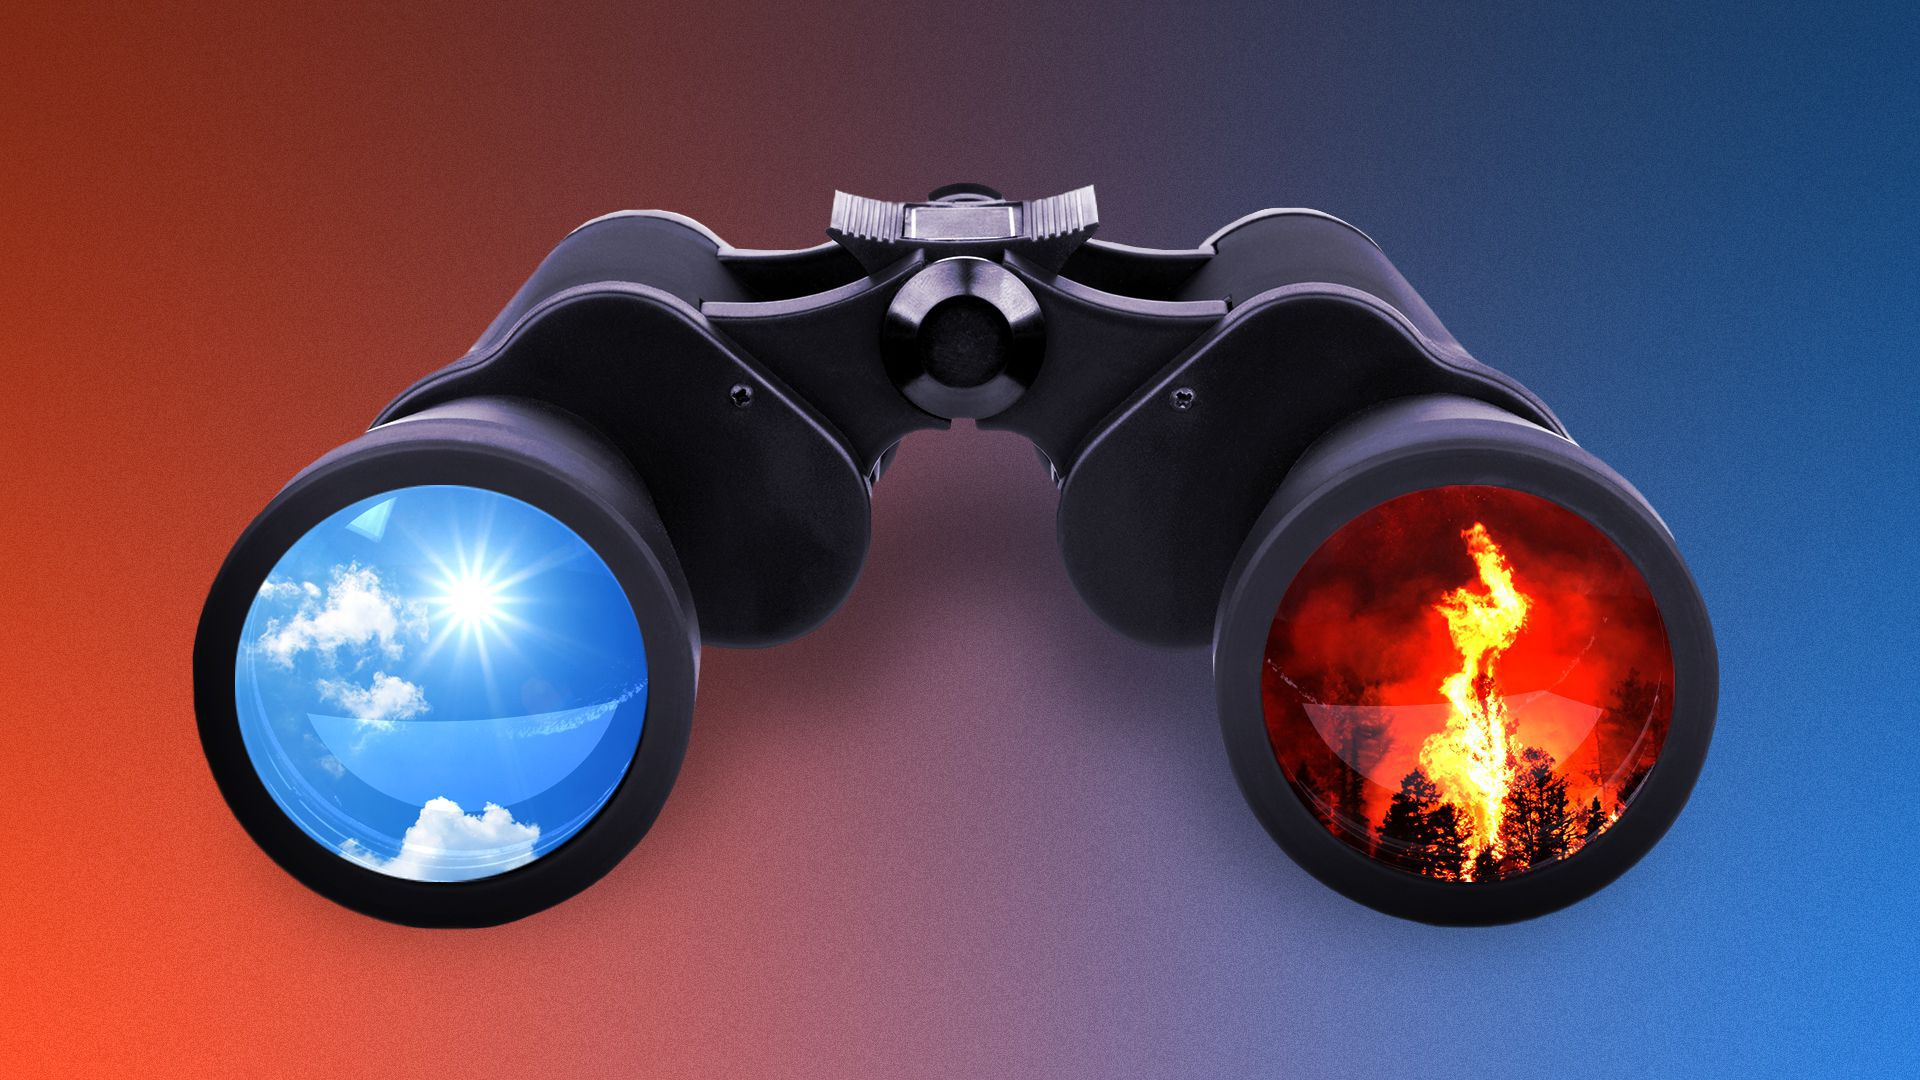 Illustration of binoculars. One lensis a sunny blue sky, the othershows a wildfire.